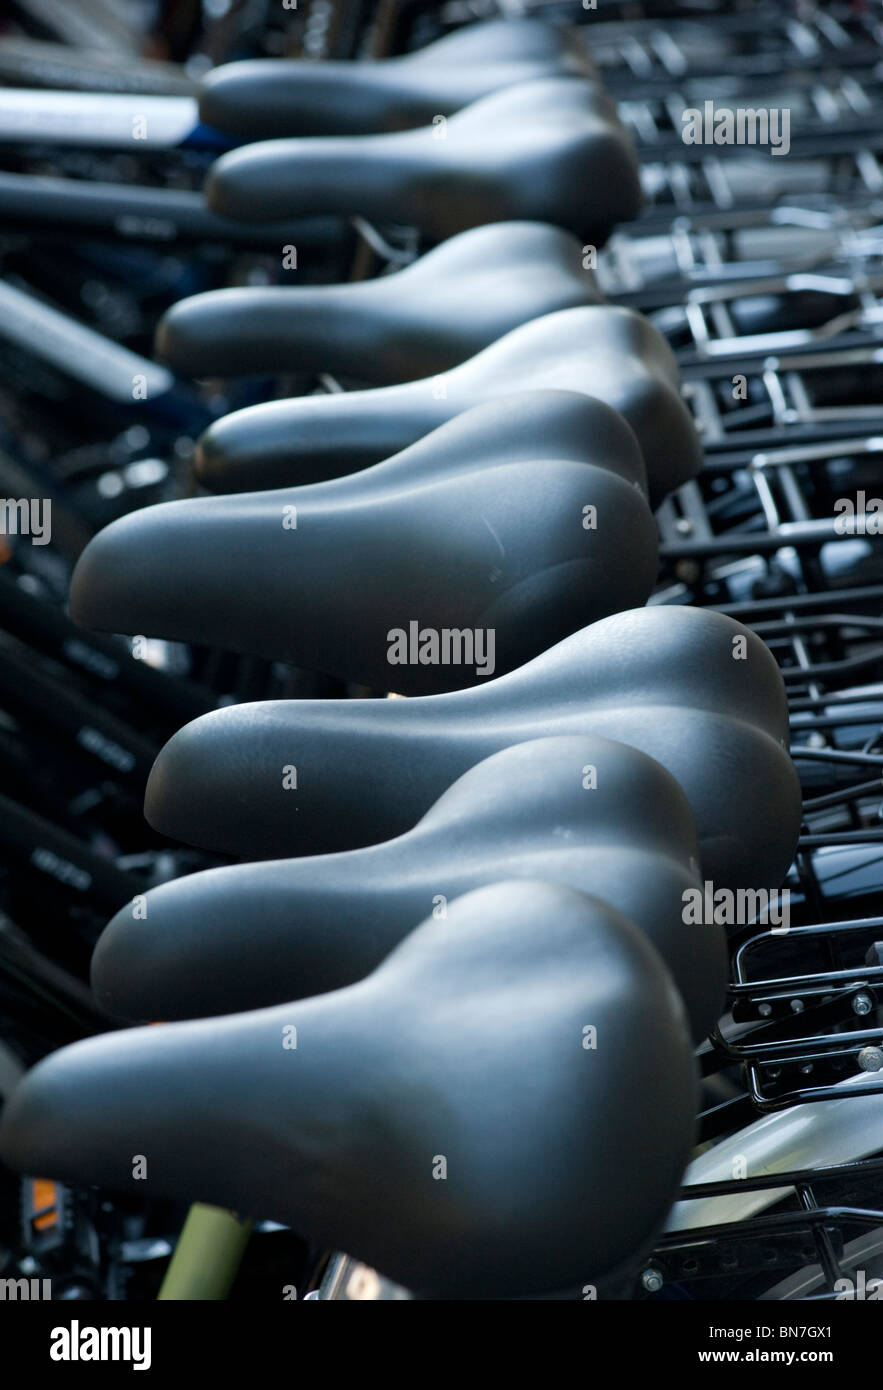 Many bicycles for hire outside shop in Berlin Germany - Stock Image